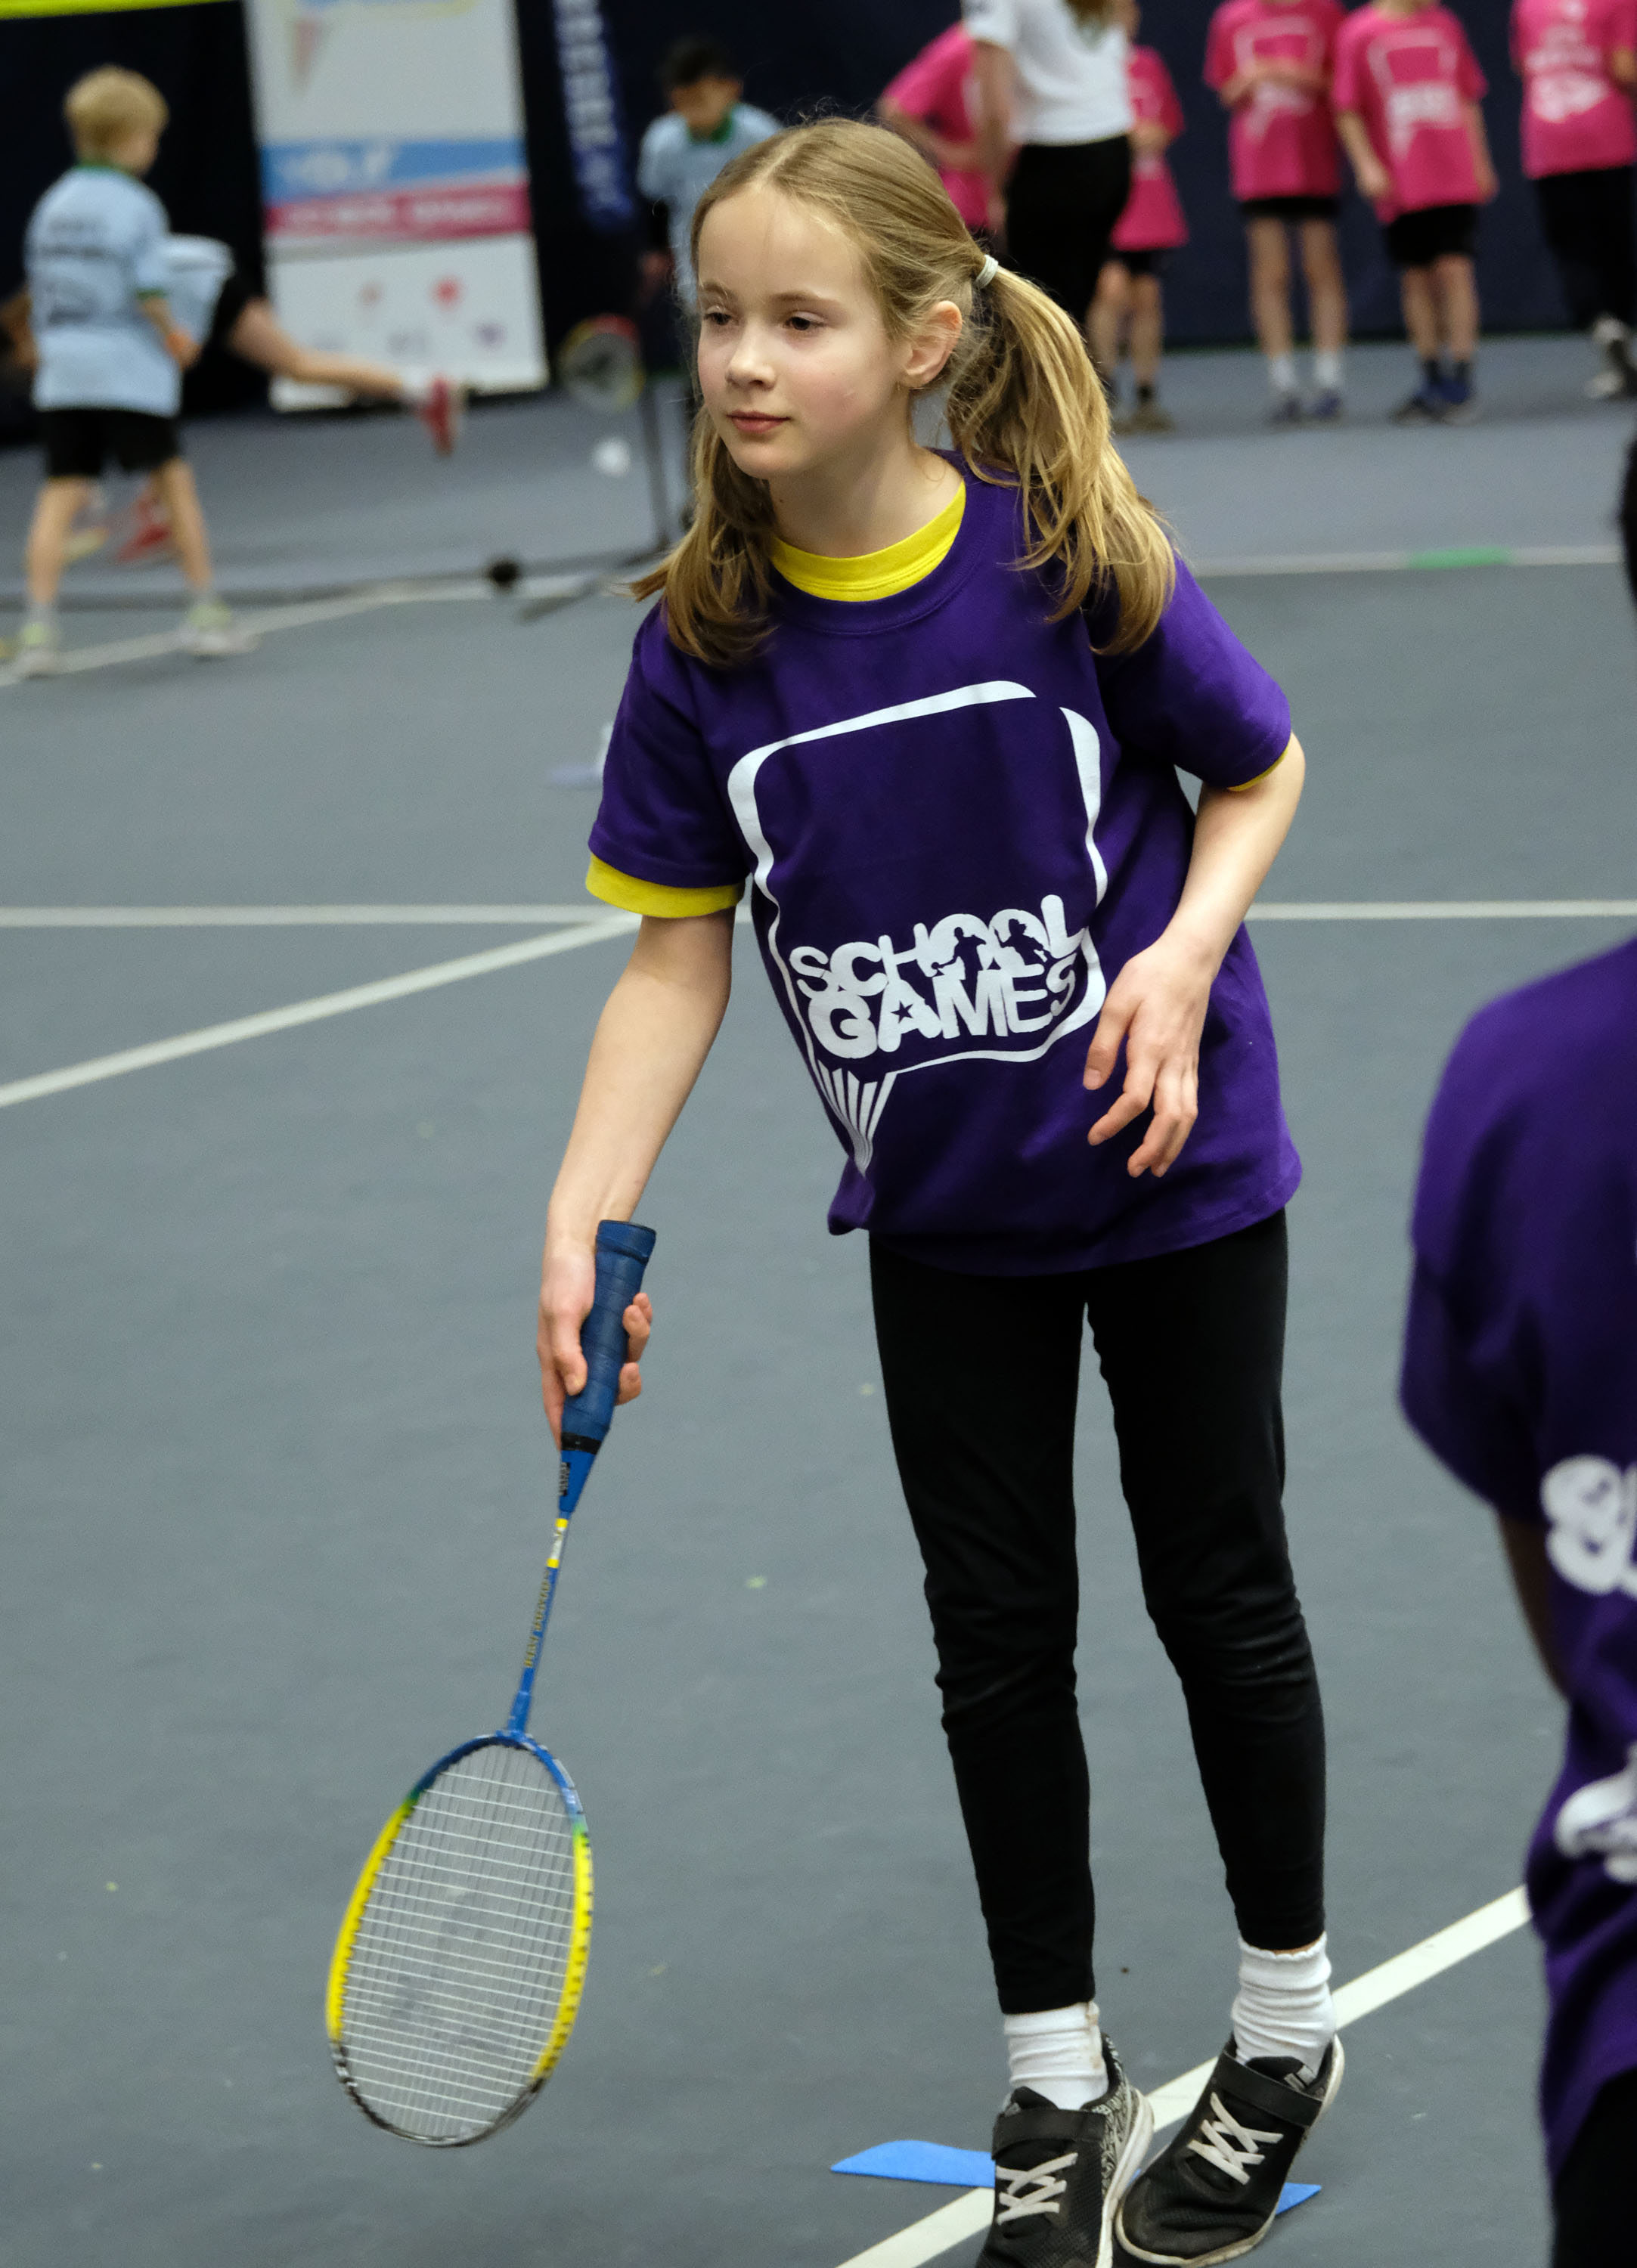 A Slough-based pupil competes in the badminton event at the Berkshire Winter School Games. PHOTOS: Mike Swift, 180378